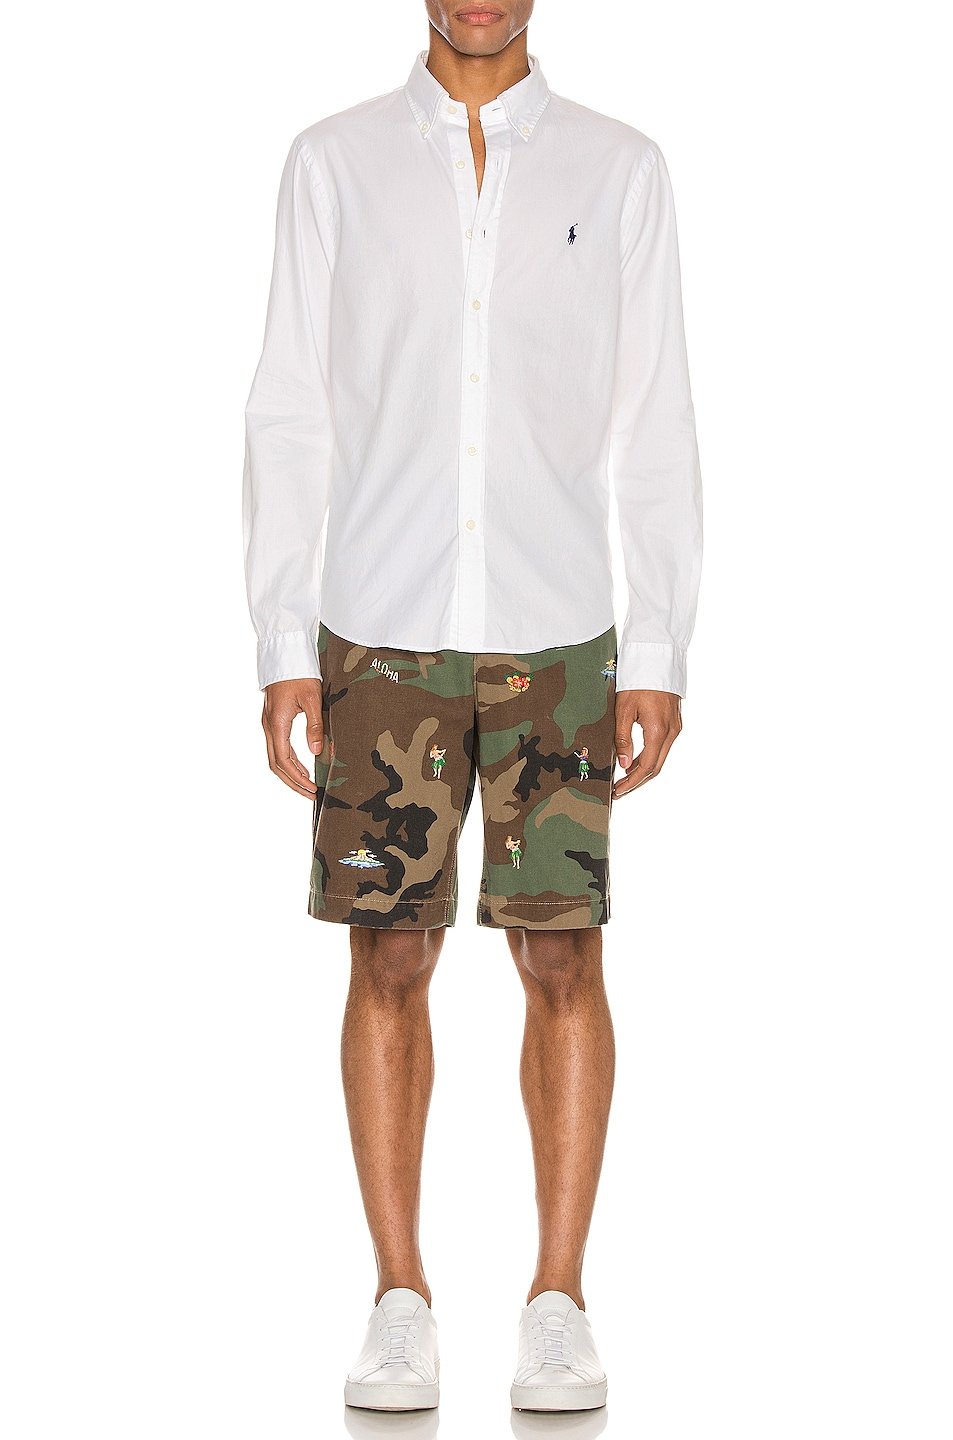 Image 5 of Polo Ralph Lauren Rugged Chino Shorts in Surplus Camo With Hula